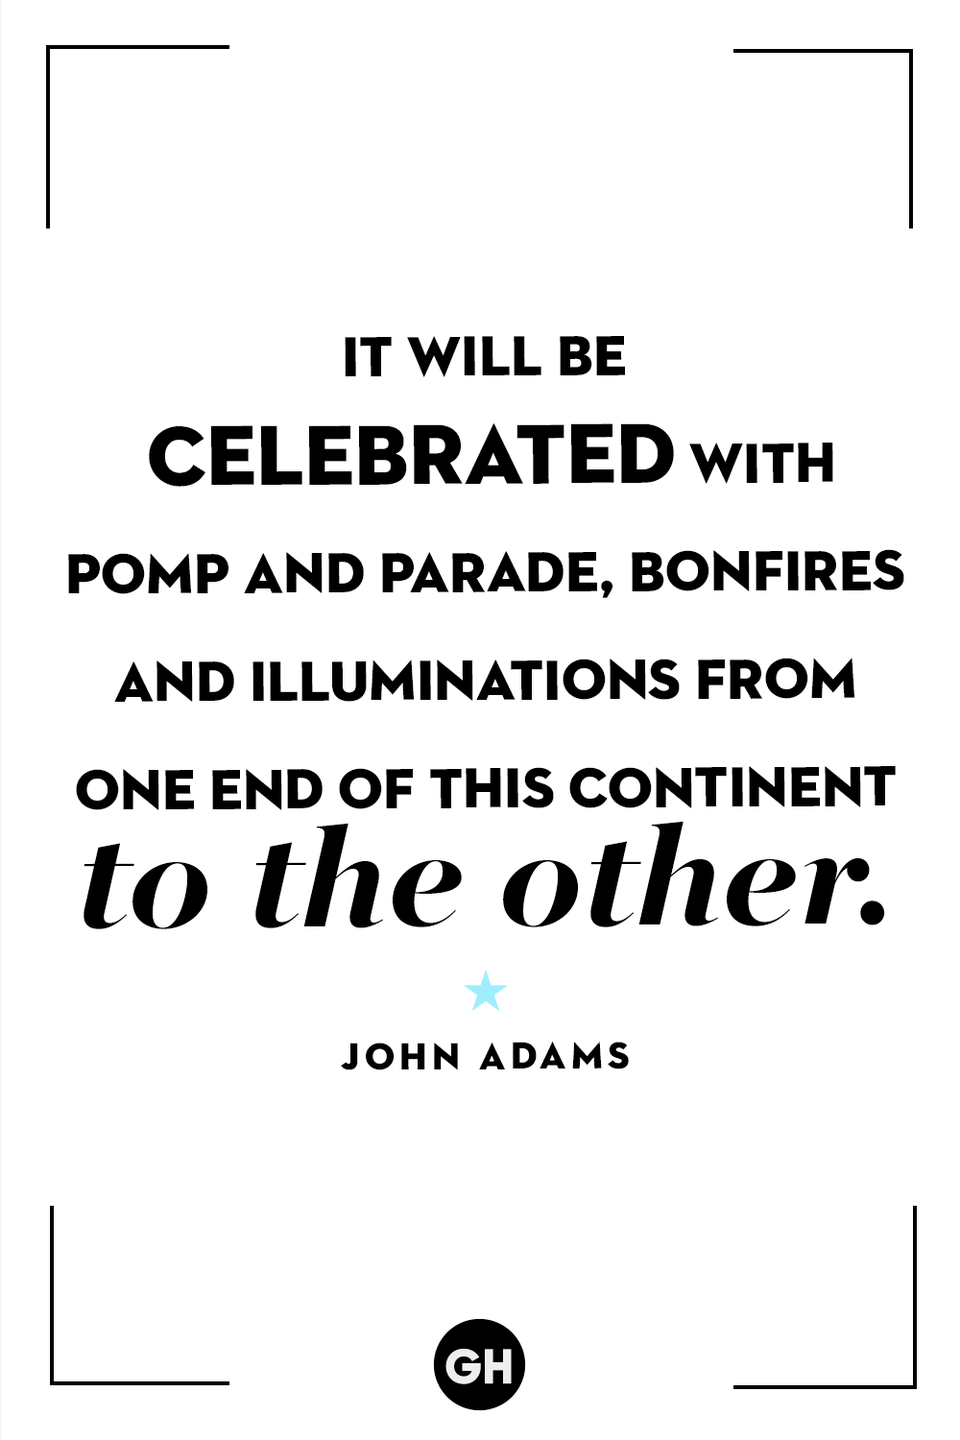 <p>It will be celebrated with pomp and parade, bonfires and illuminations from one end of this continent to the other.</p>